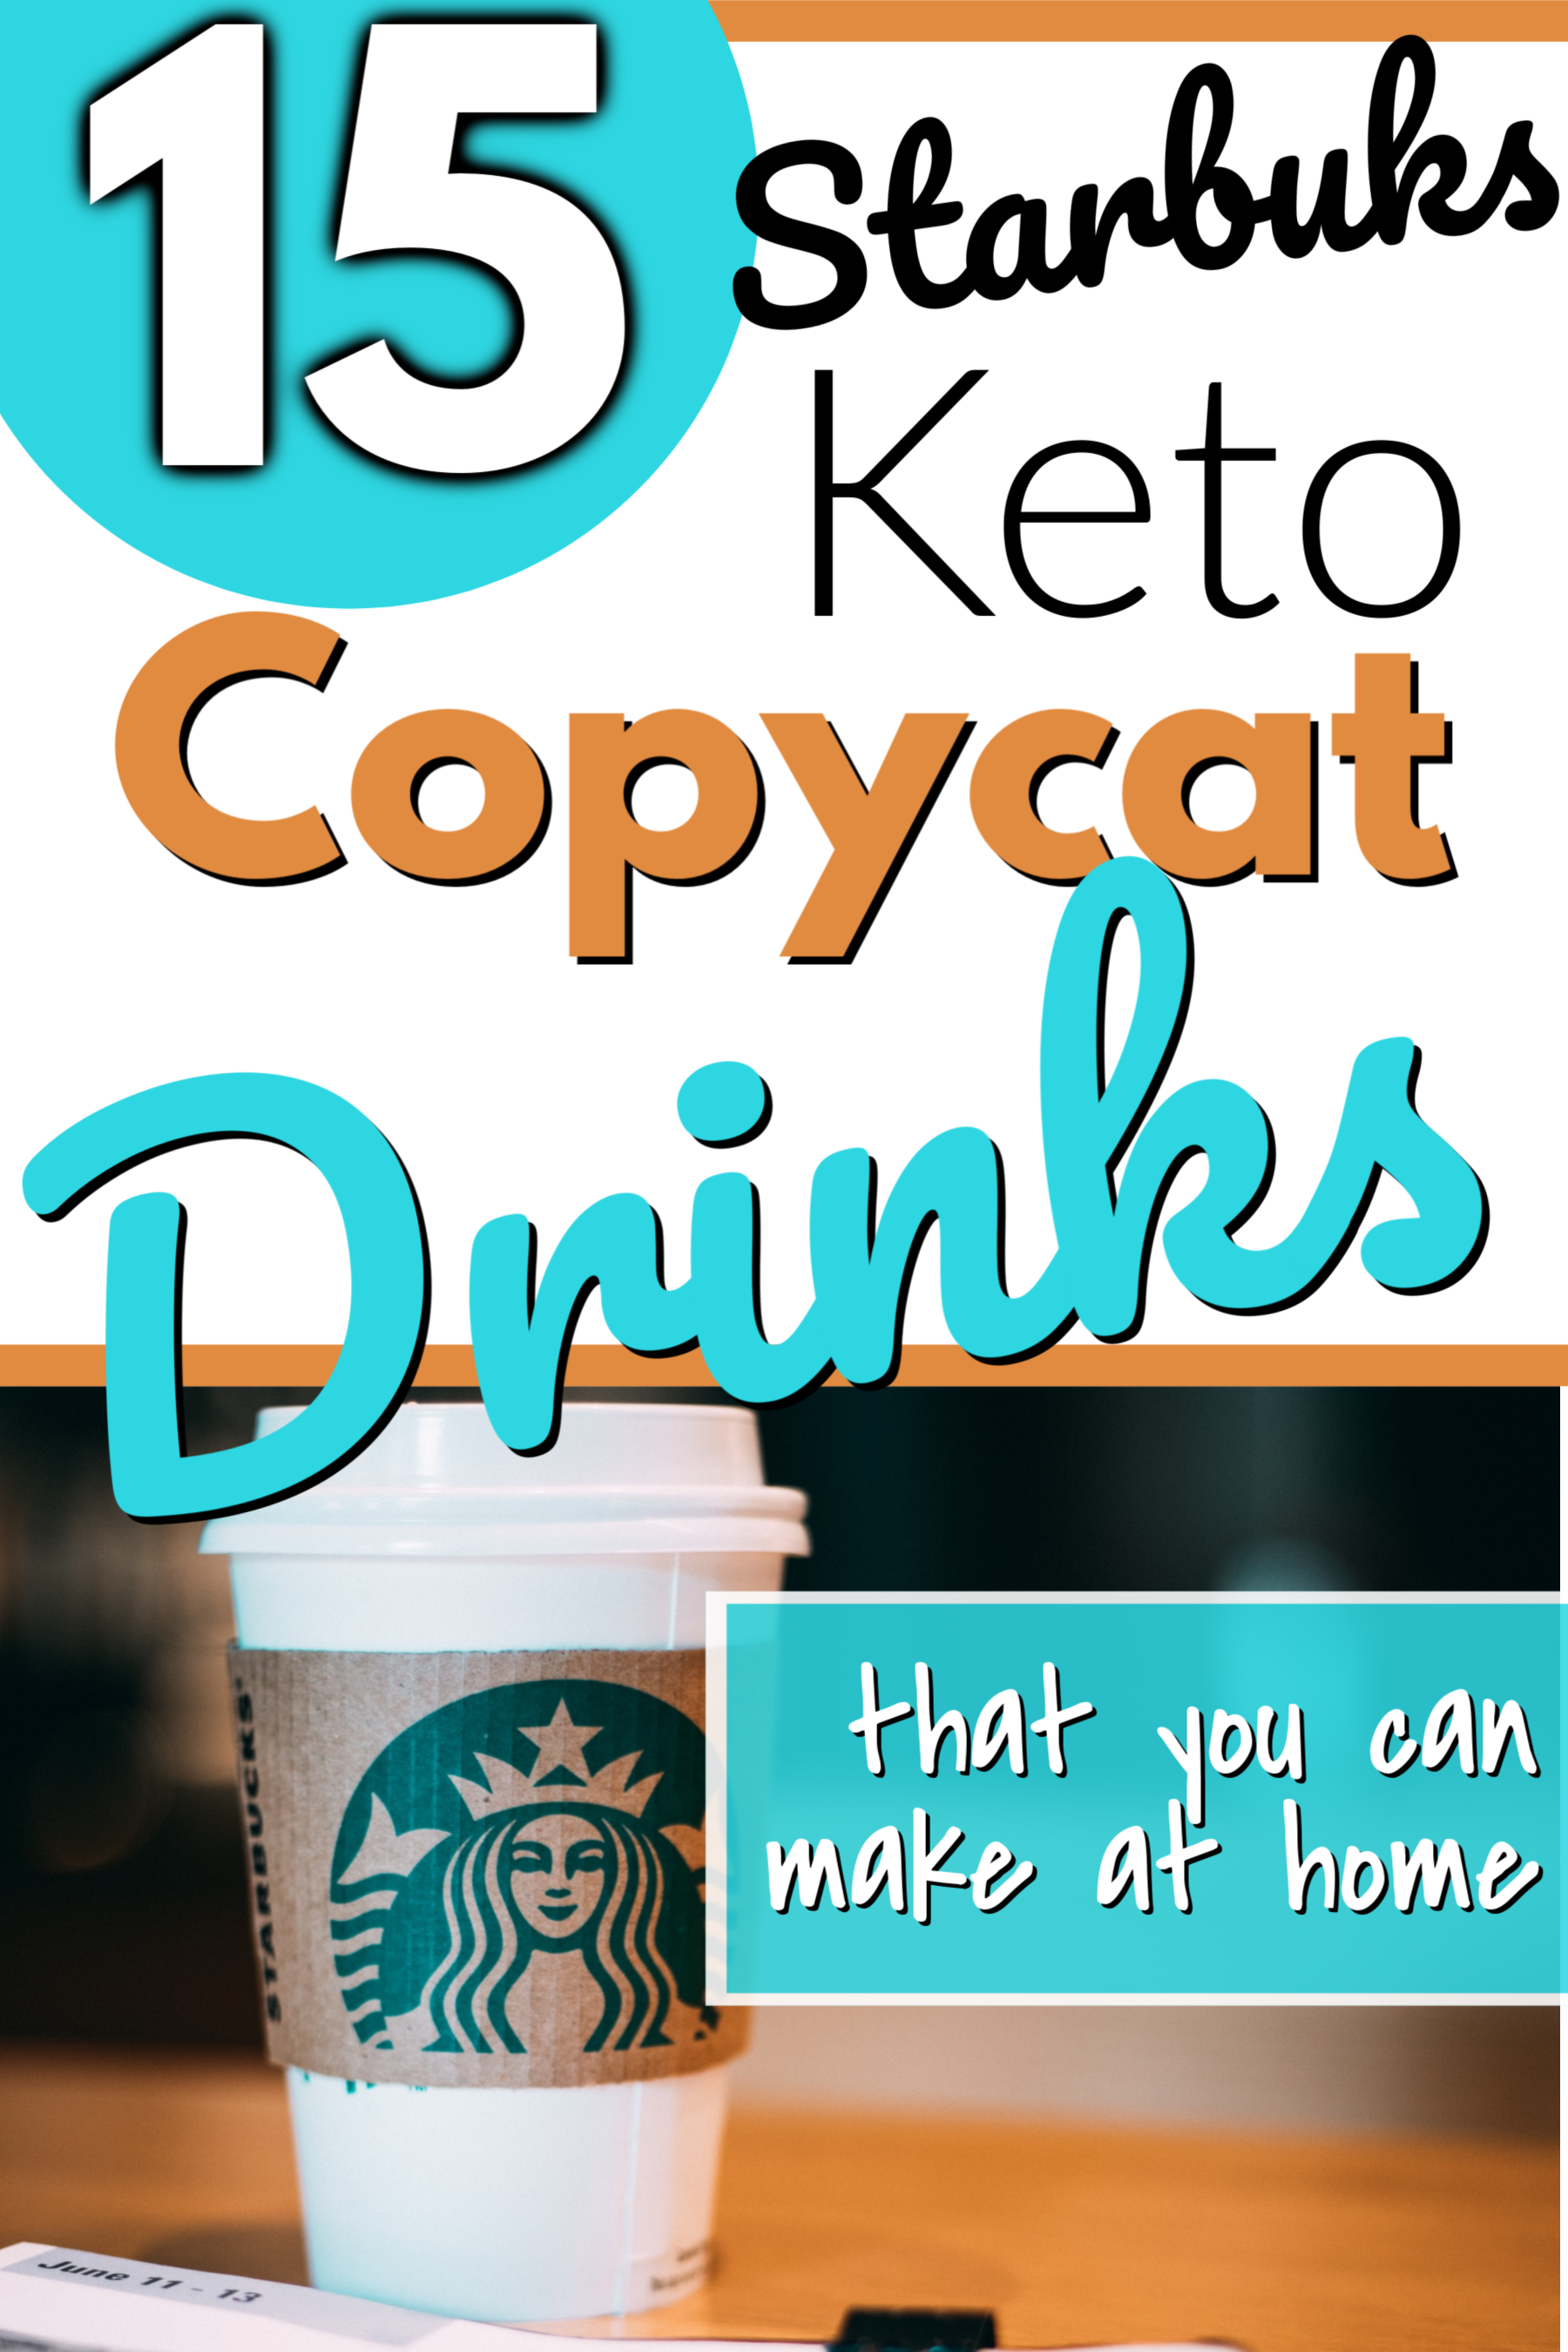 15 Keto Starbucks Copycat Drinks-that you can make at home